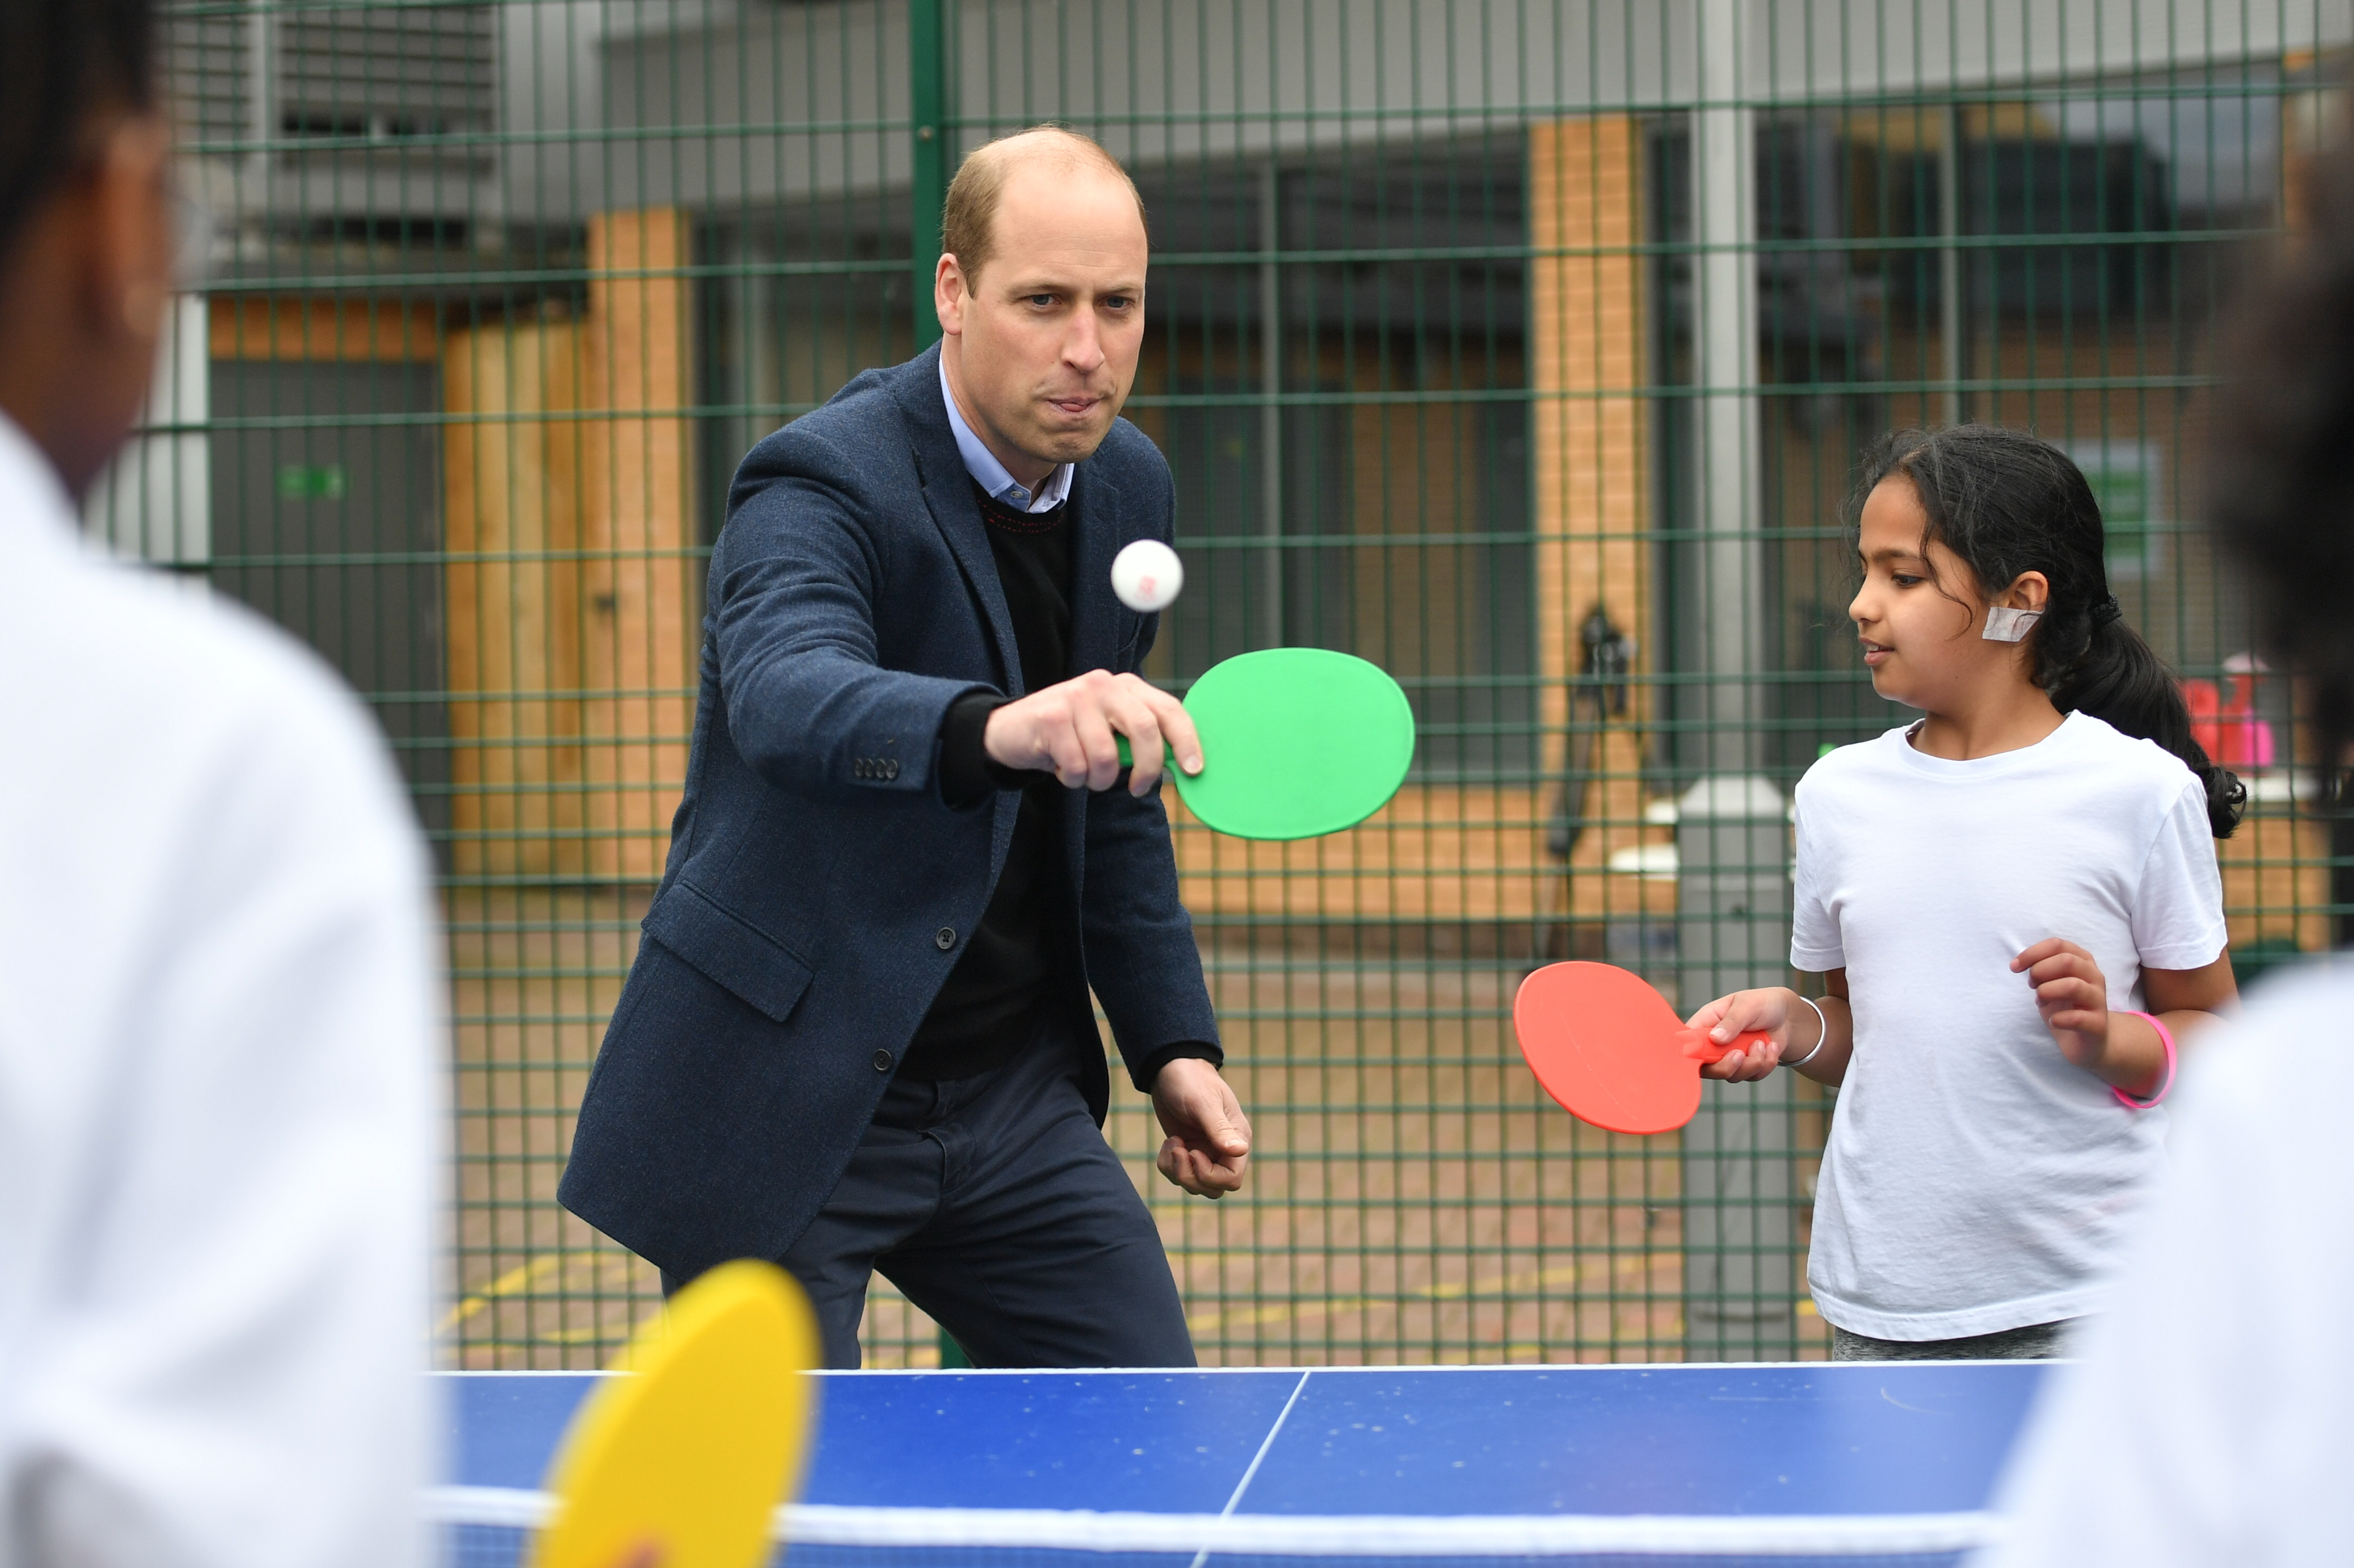 <p>The Duke of Cambridge playing table tennis during a visit to The Way Youth Zone in Wolverhampton, West Midlands. Picture date: Thursday May 13, 2021.</p>